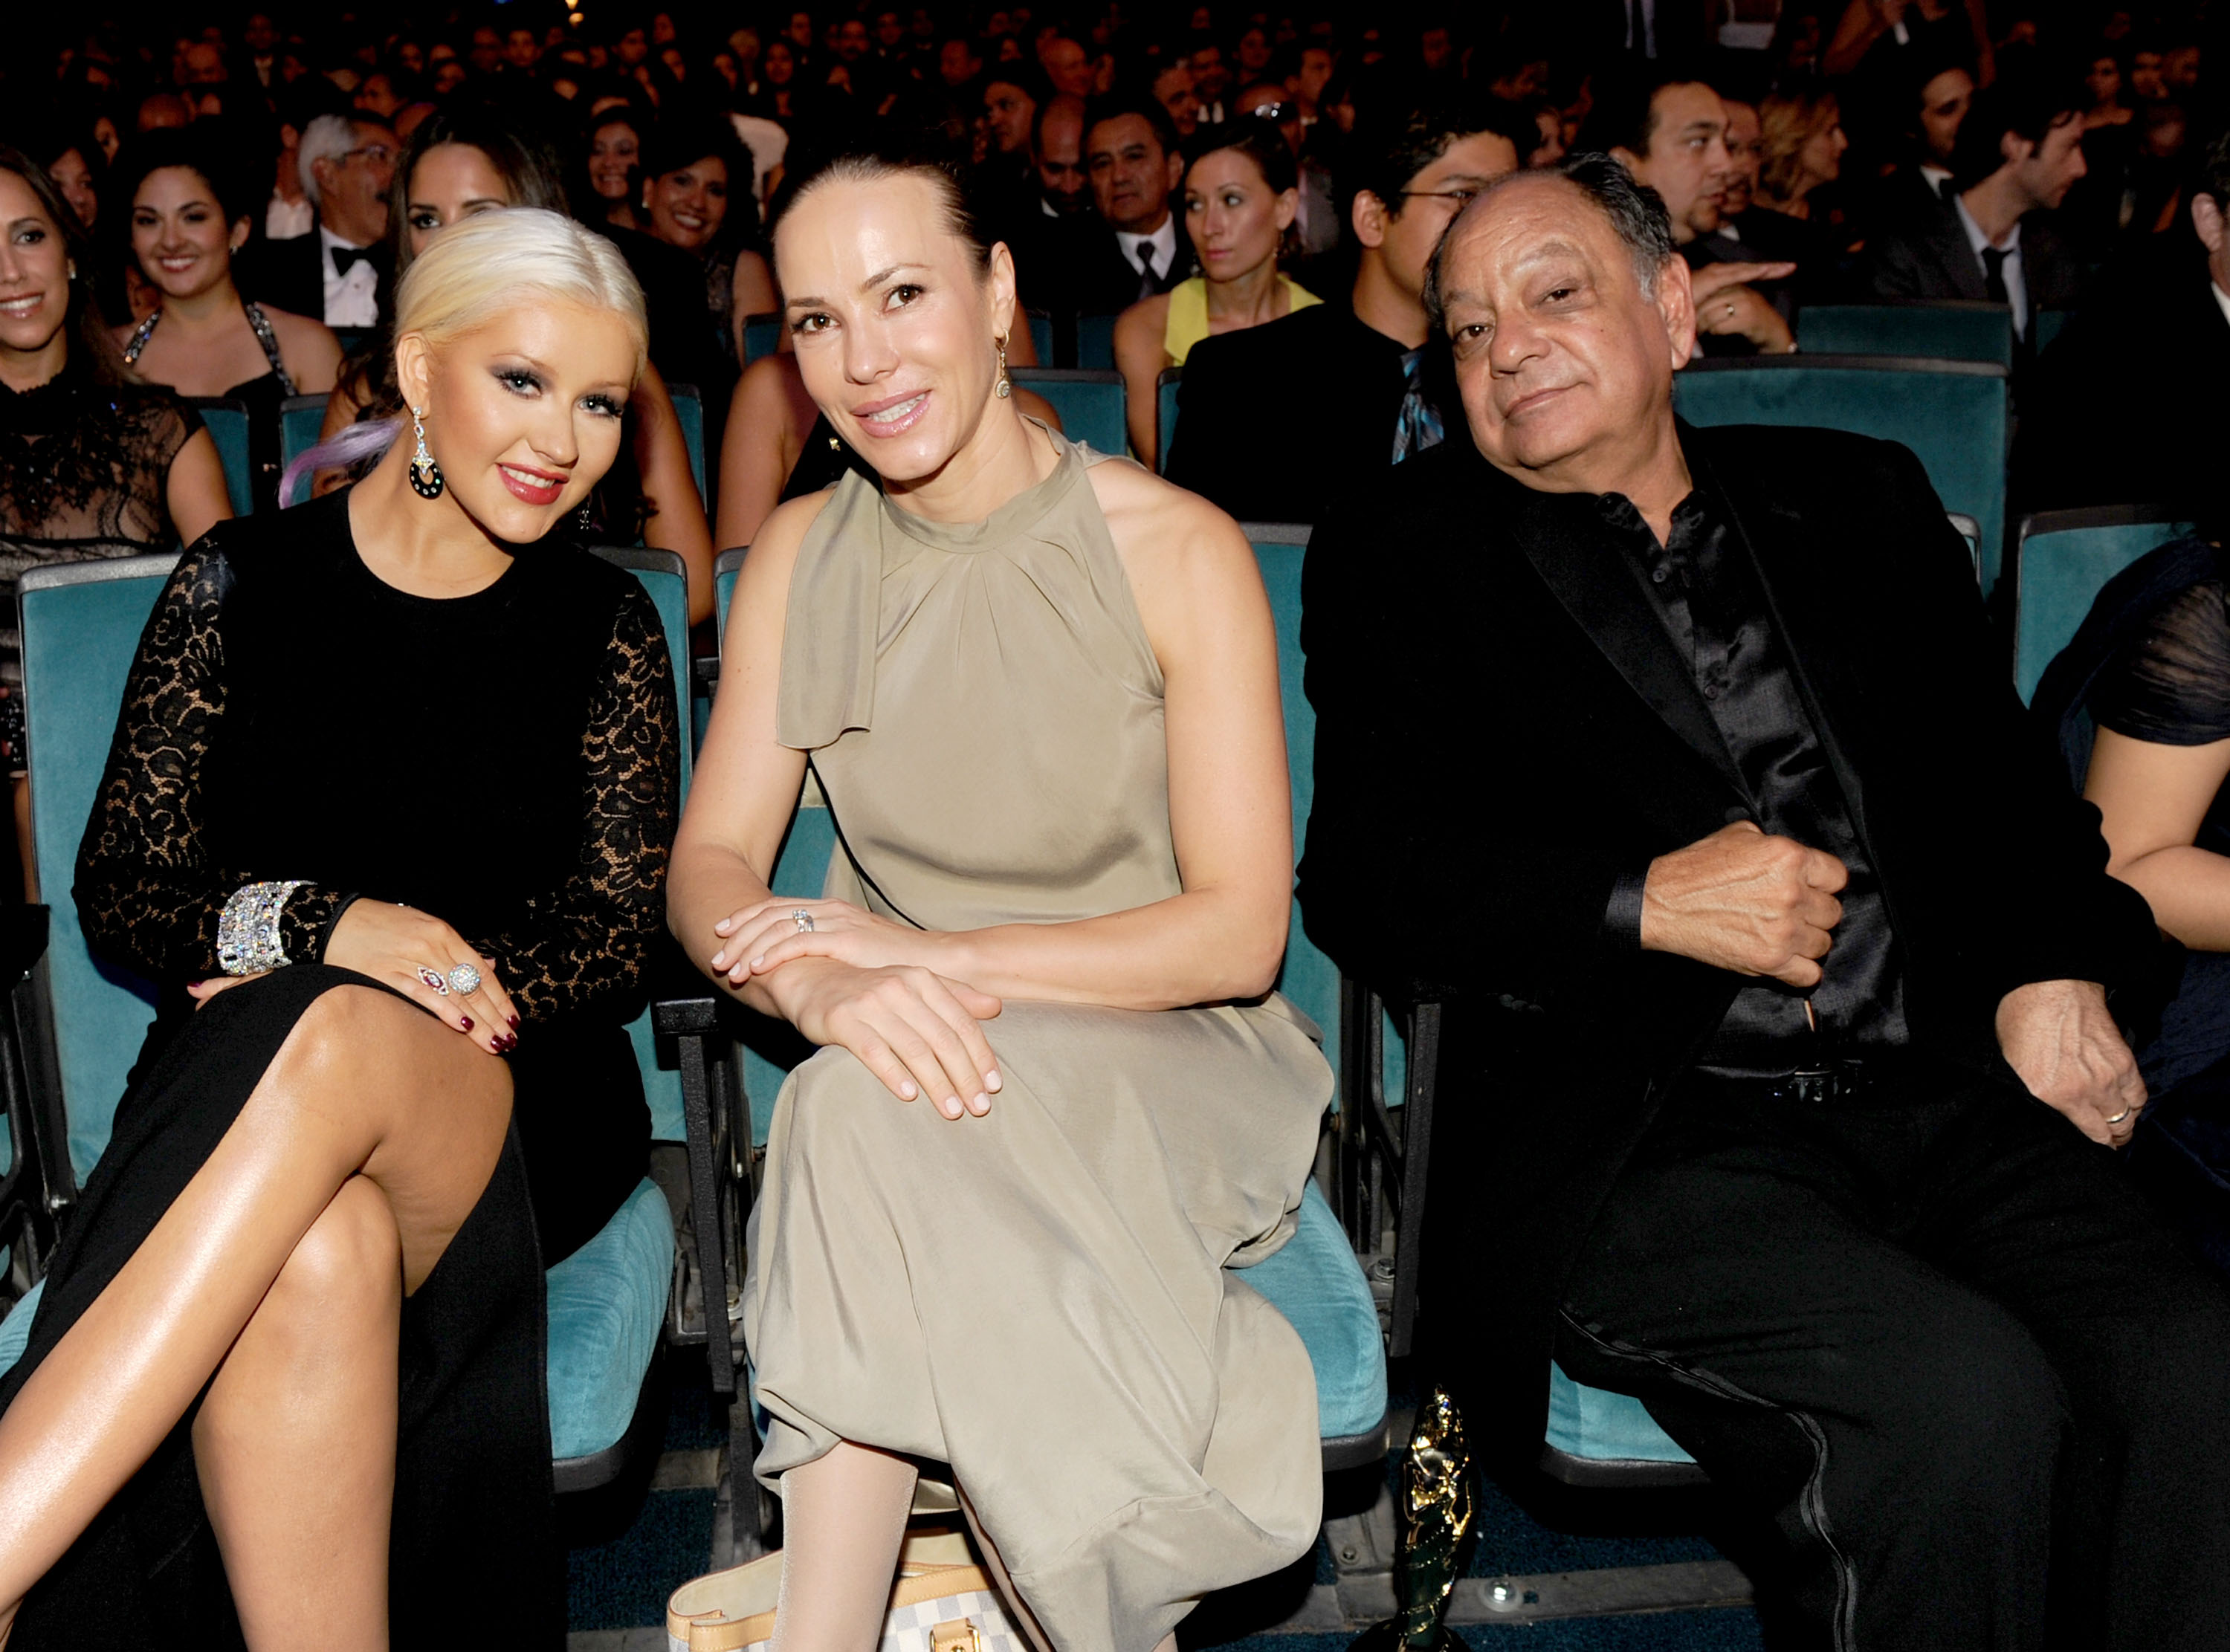 Christina Aguilera was seated next to Natasha Marin and Cheech Marin for the ALMA Awards in LA.